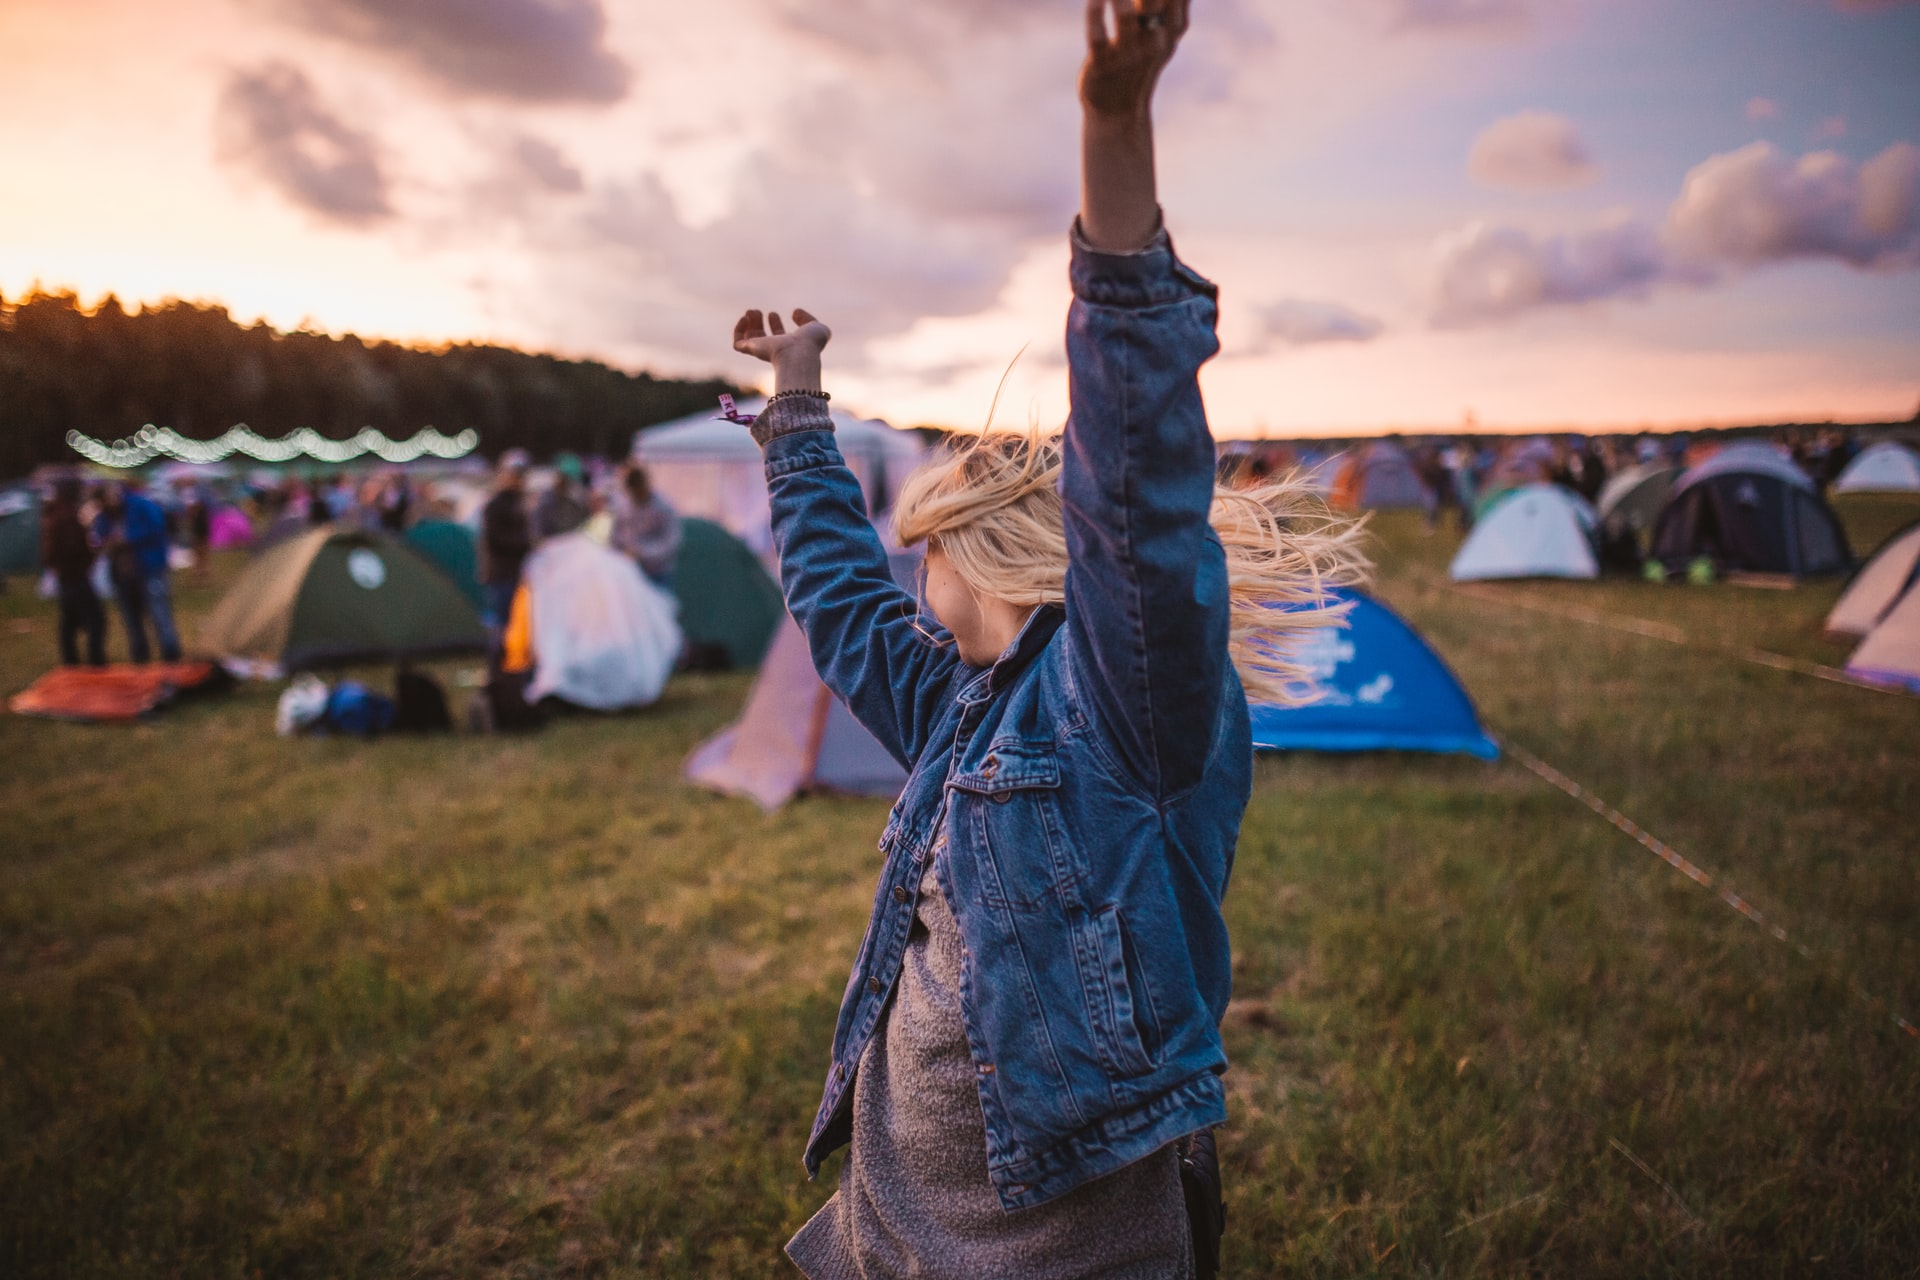 blonde-woman-in-denim-jacket-dancing-in-field-of-tents-at-festival-packing-list-for-festival